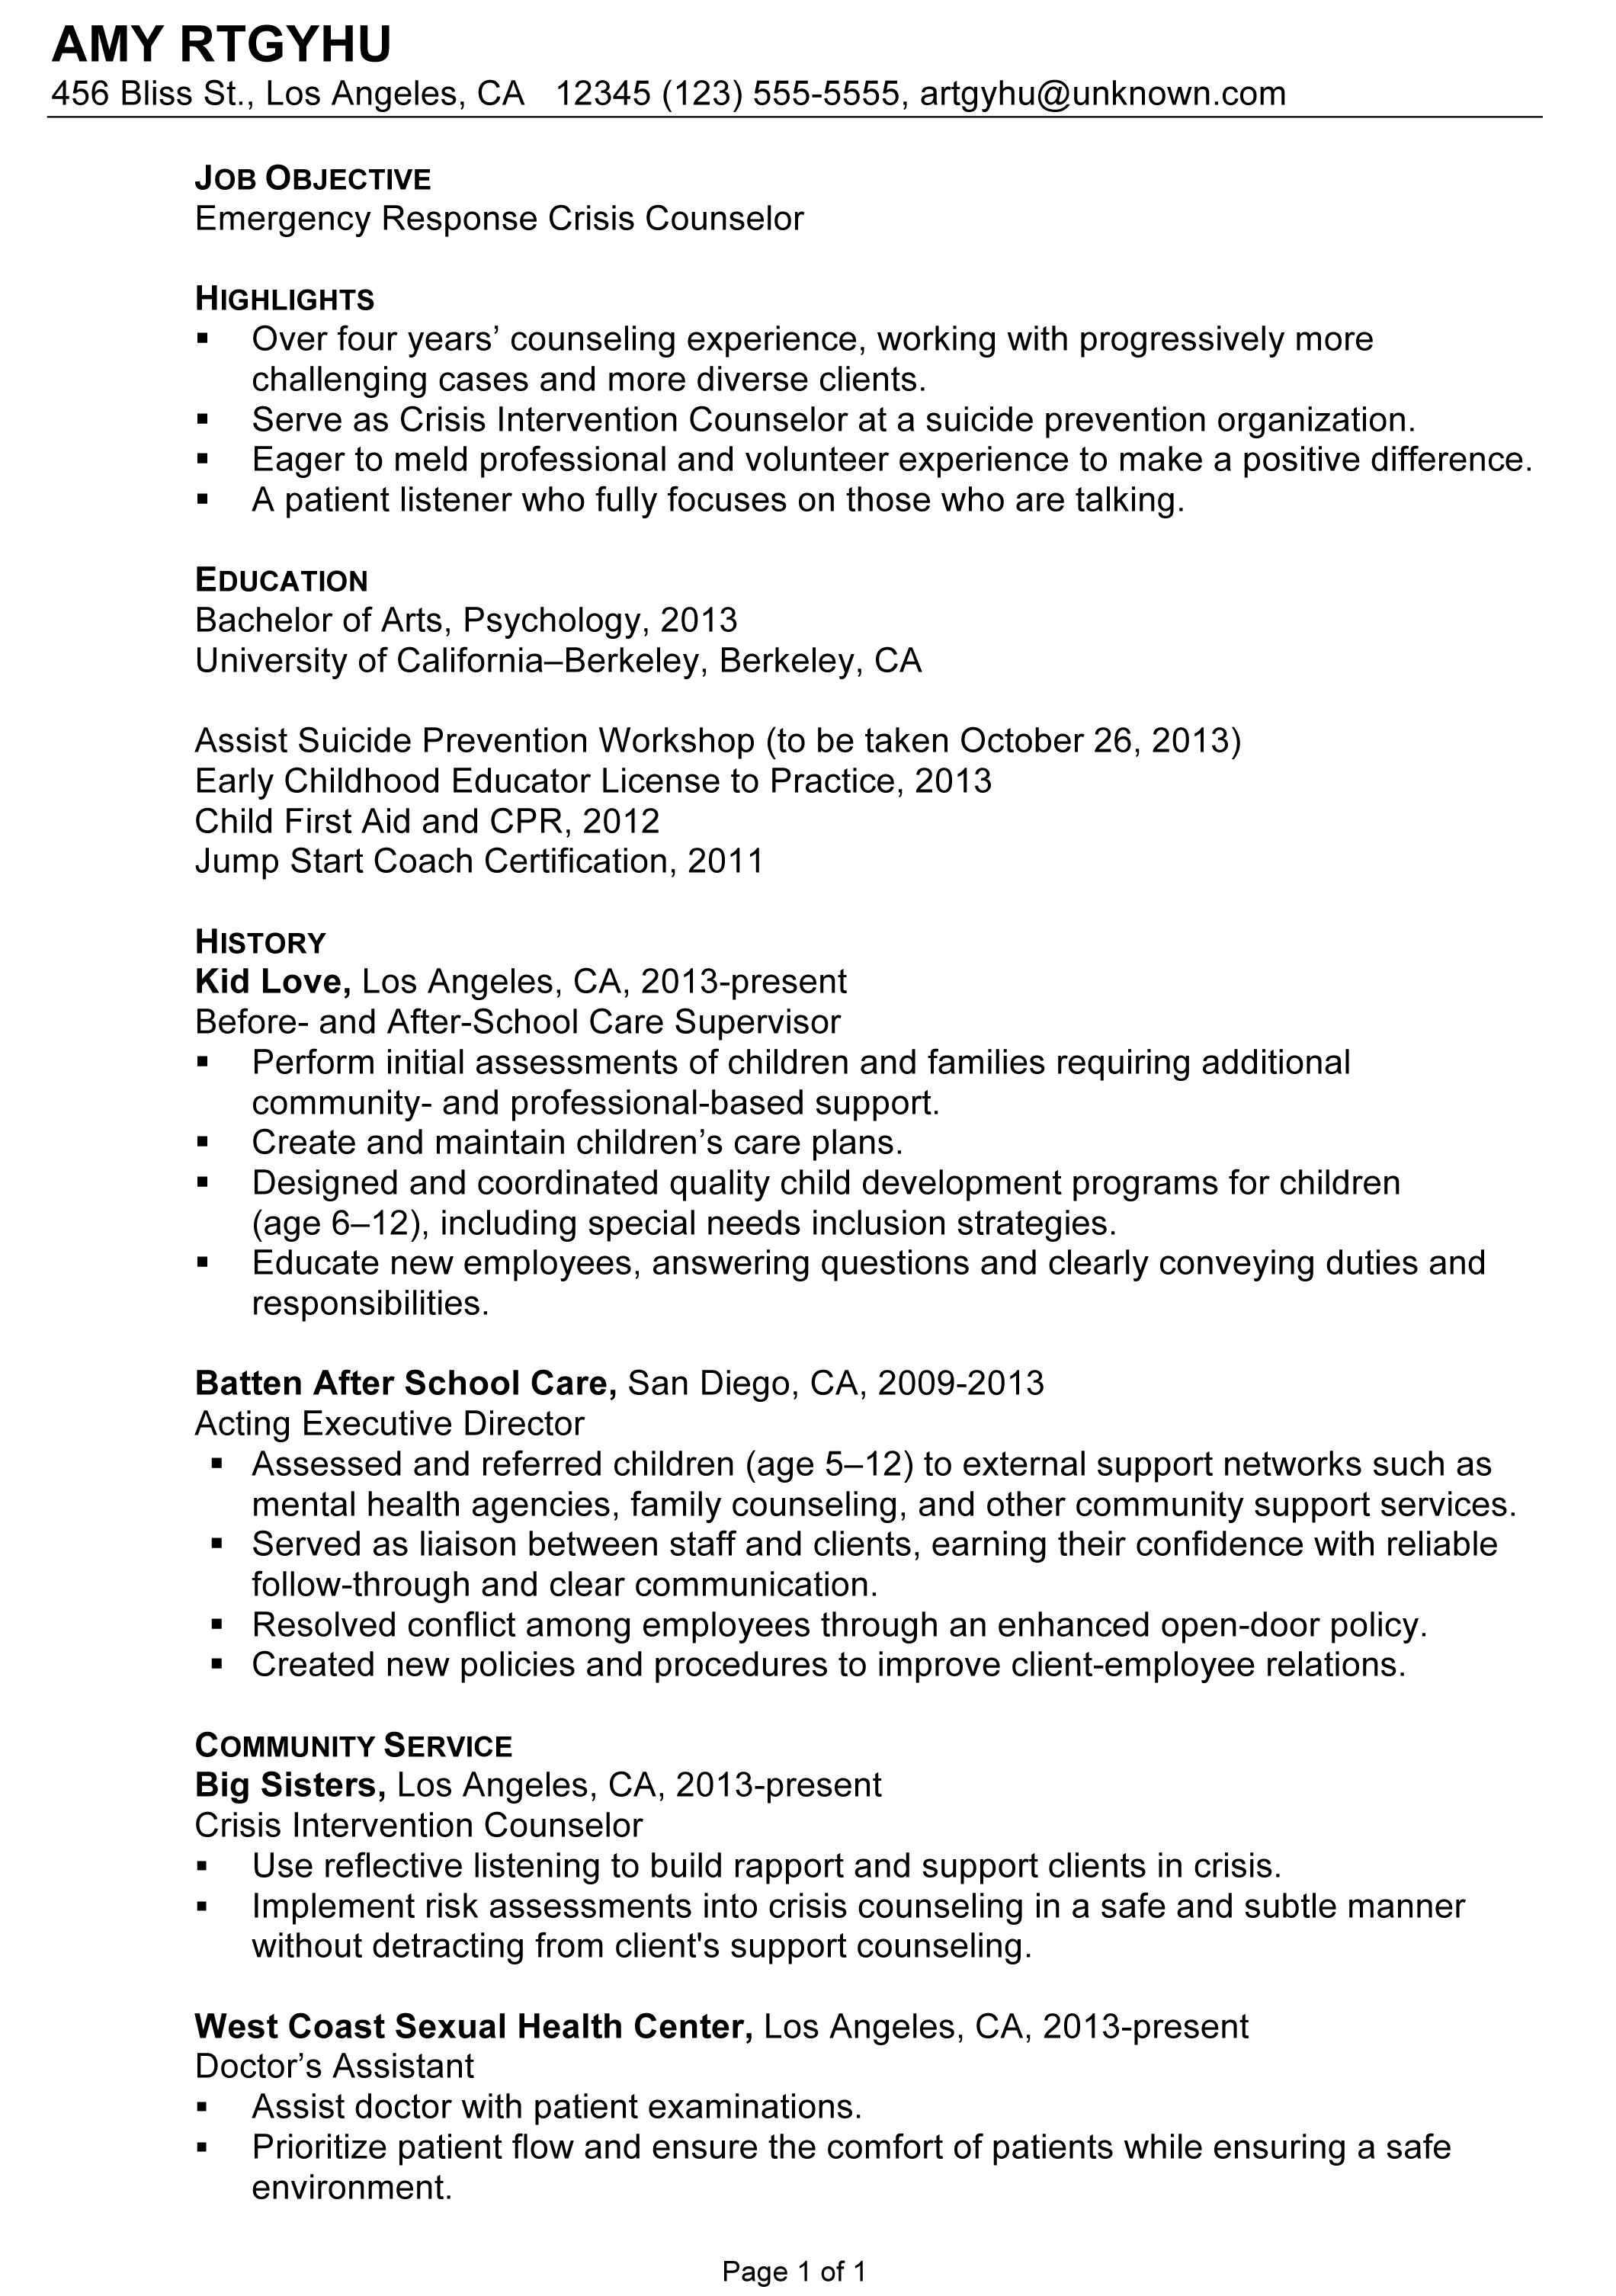 Apa Resume Template Chronological Resume Sample Emergency Response Crisis Counselor